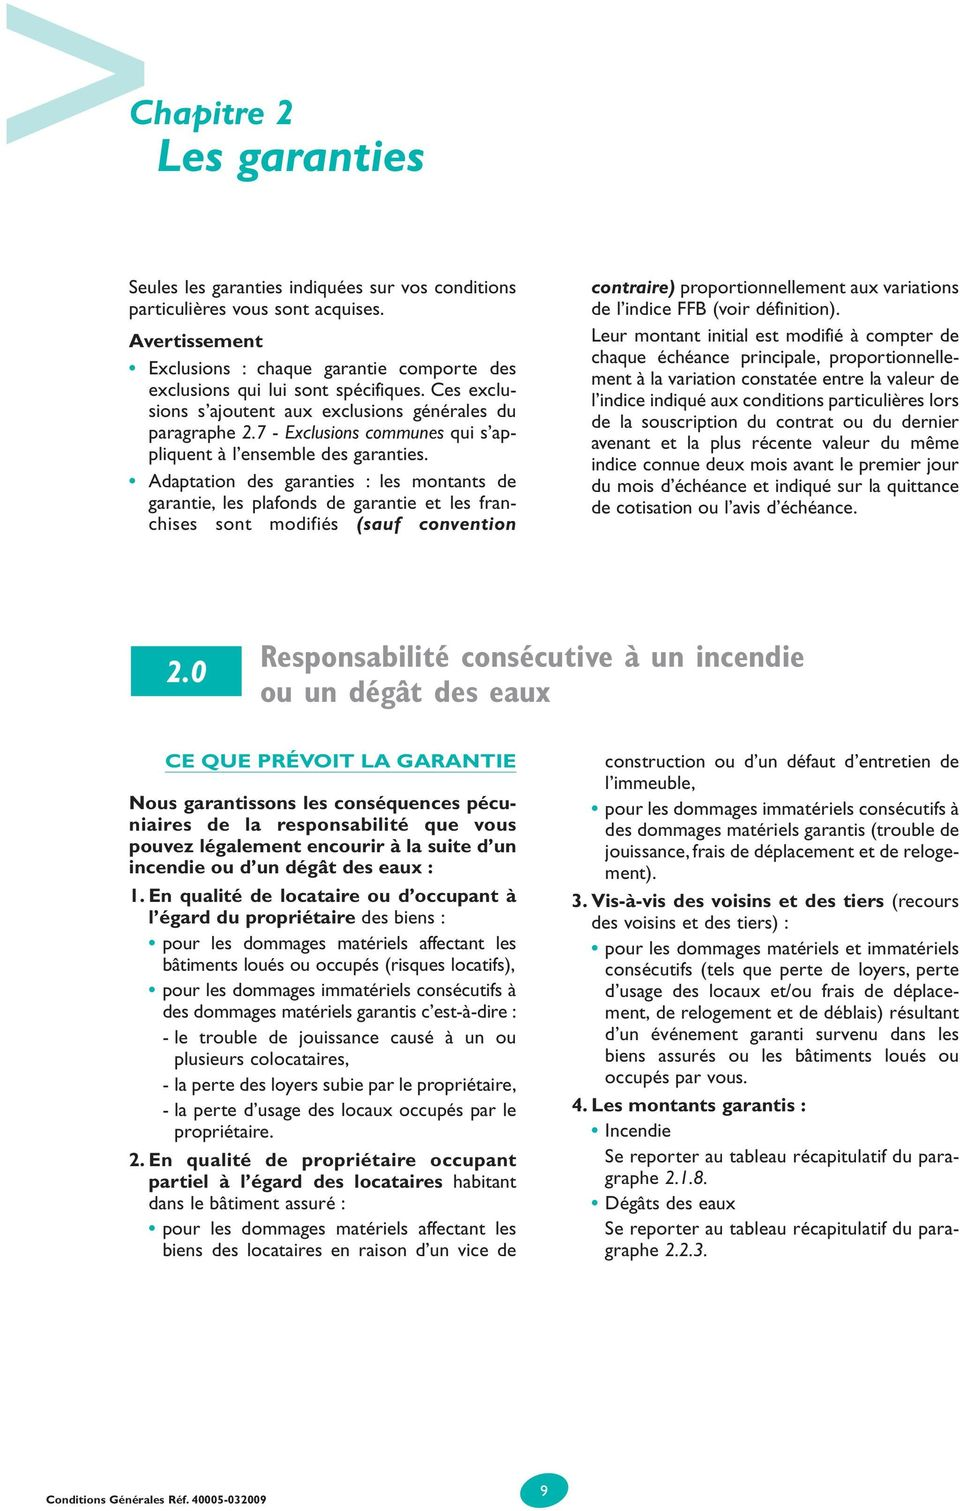 7 - Exclusions communes qui s appliquent à l ensemble des garanties.